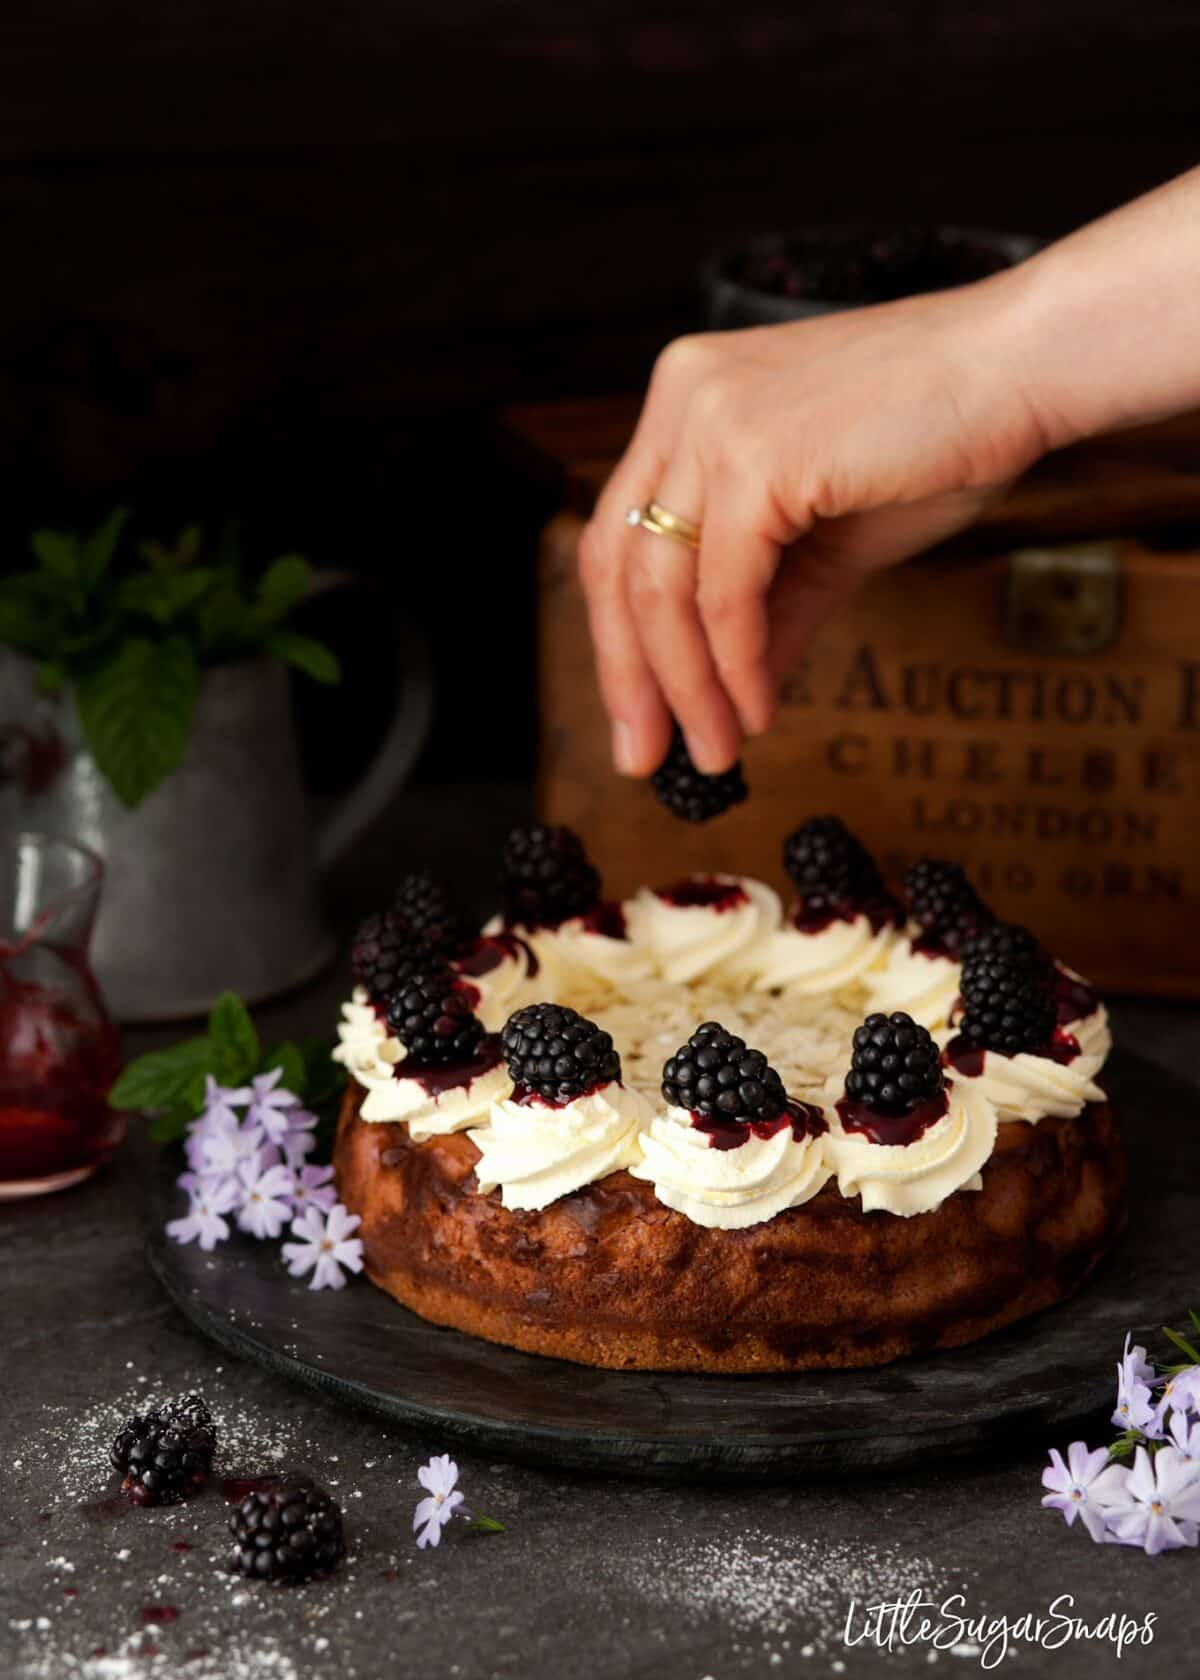 Person adding blackberries to the top of a baked cheesecake